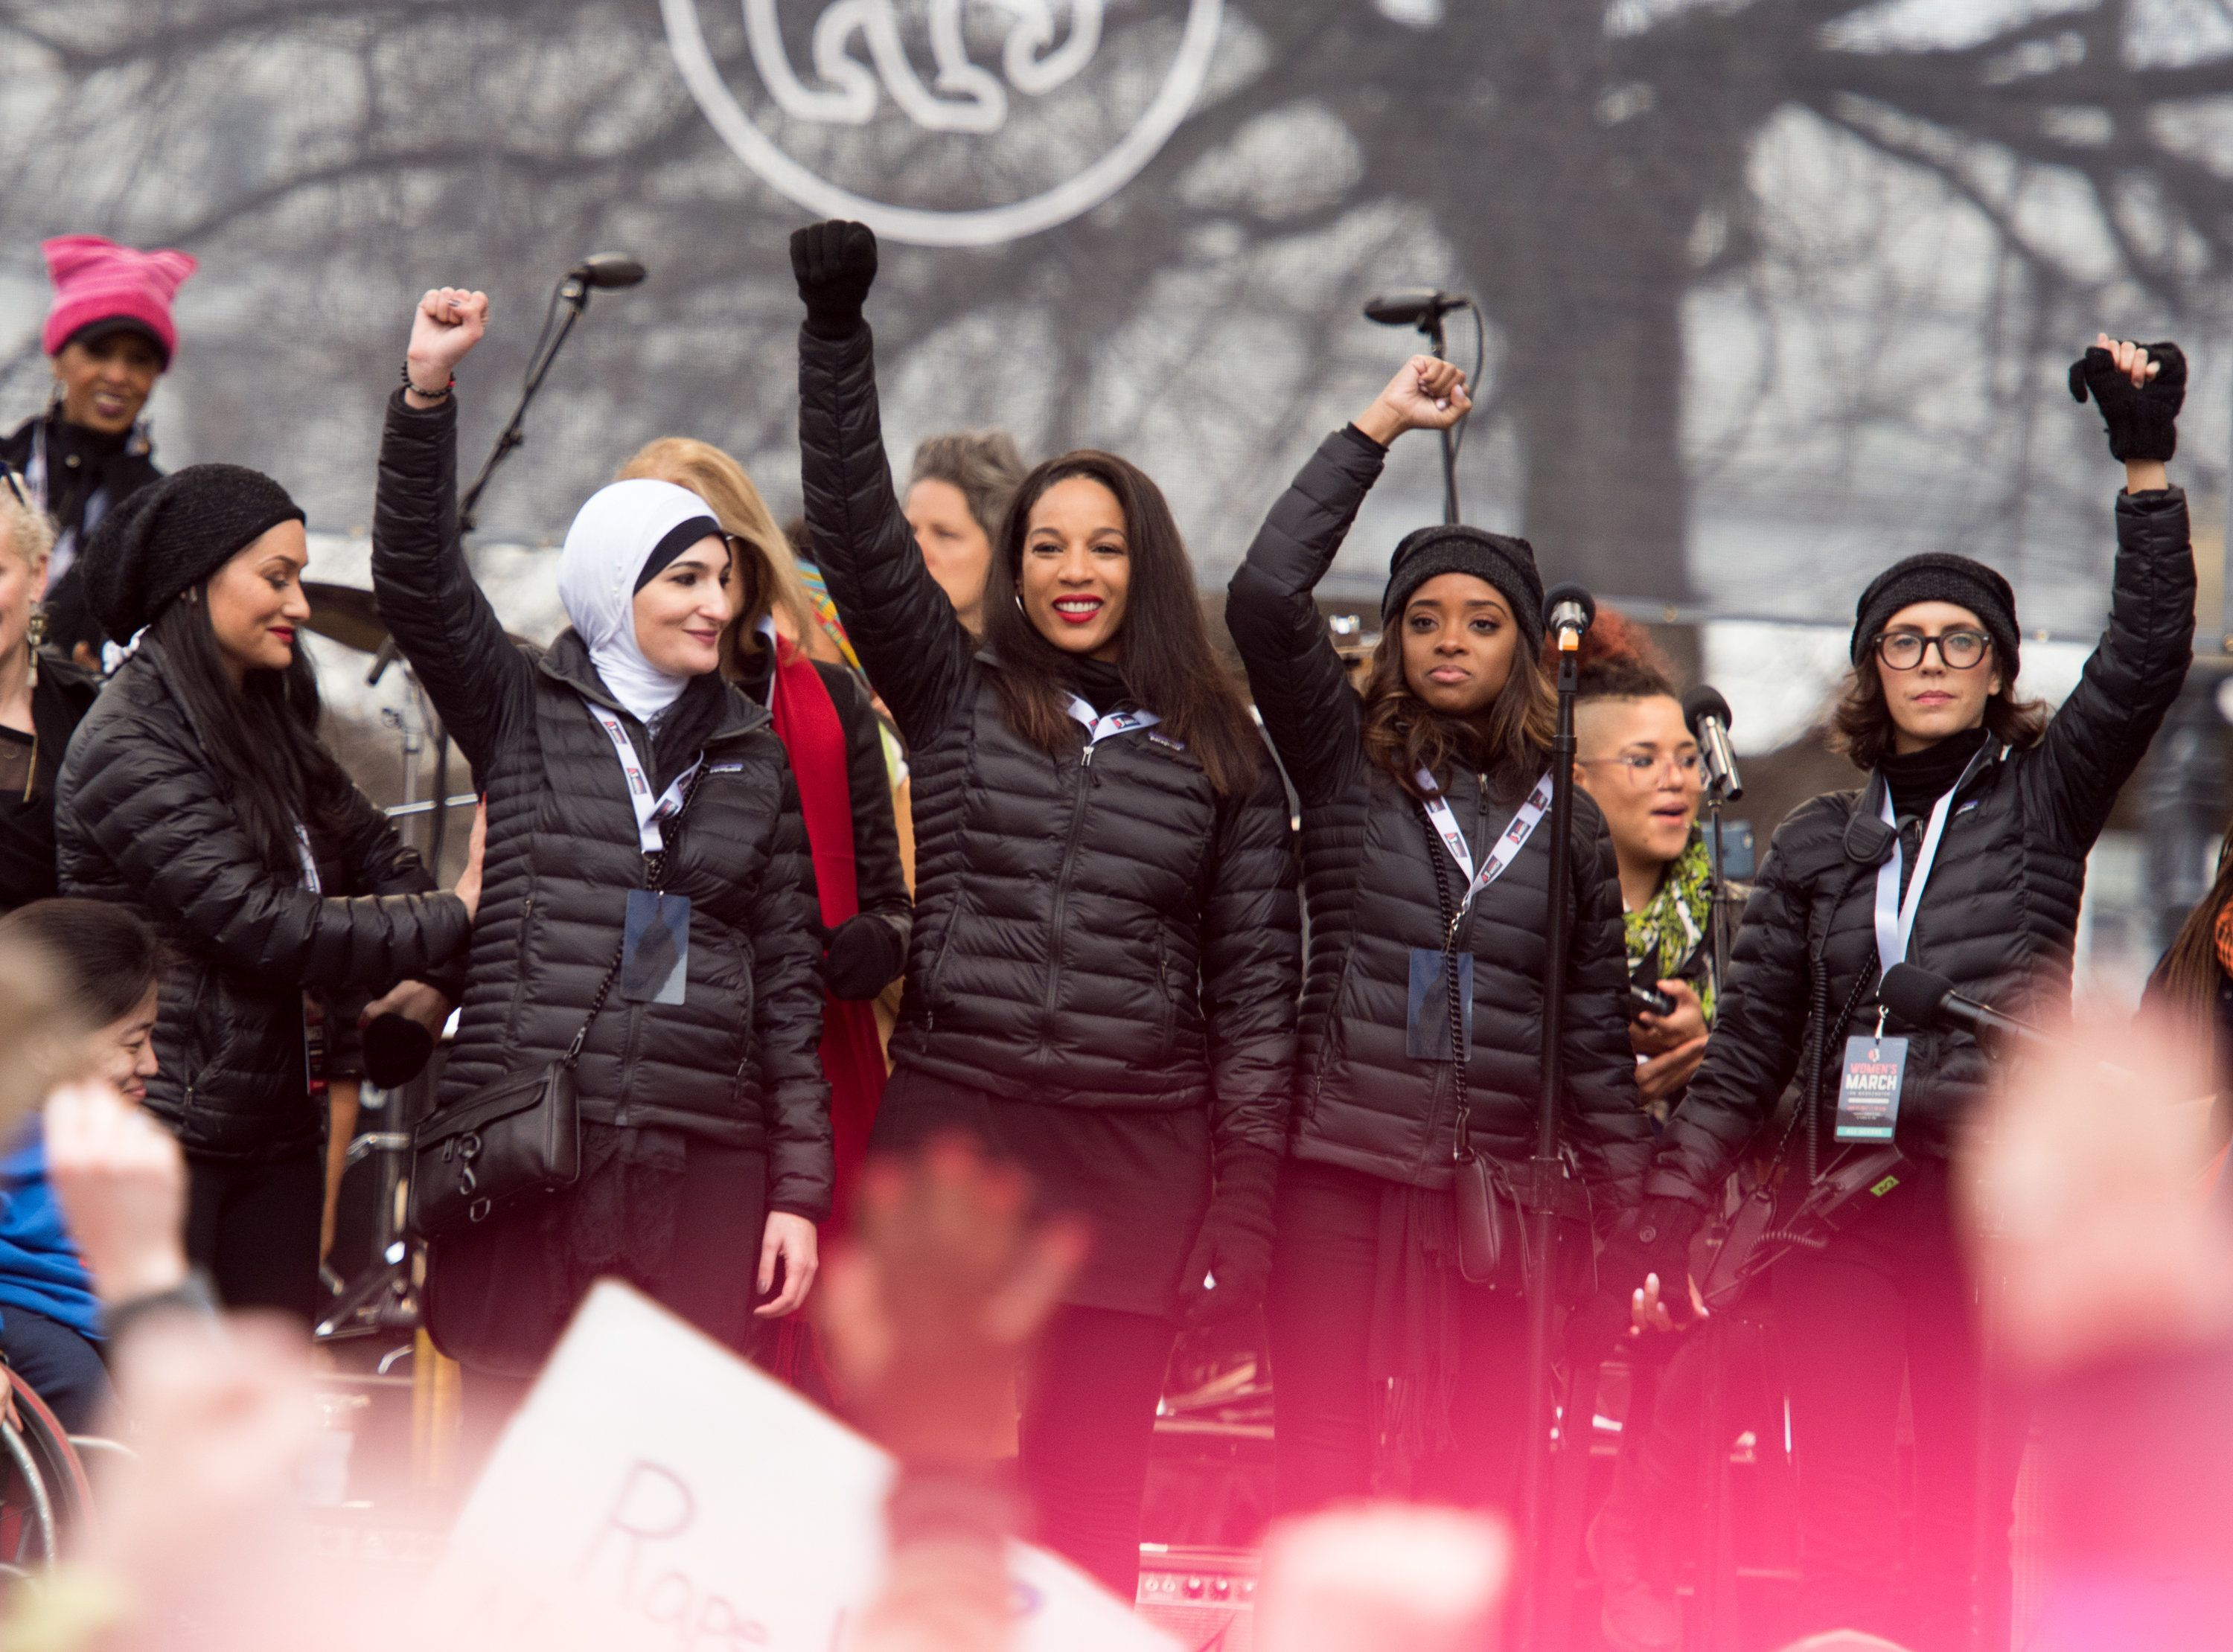 Women's March national co-chairs Carmen Perez, Linda Sarsour and Tamika D. Mallory attend the Women's March on Washington on